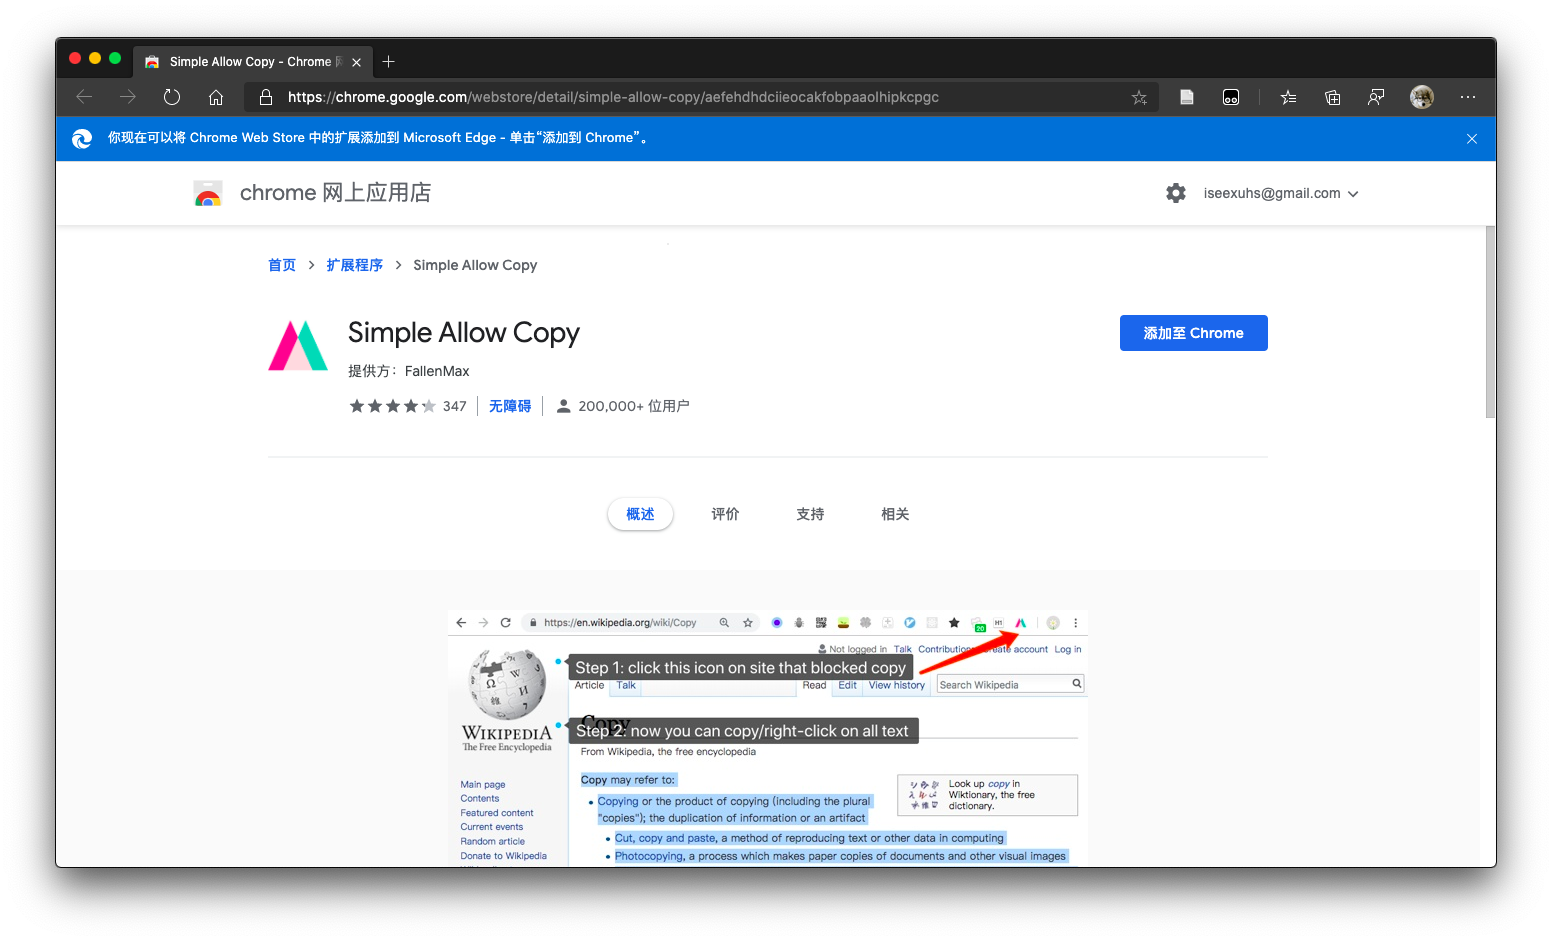 Simple Allow Copy - Chrome商店